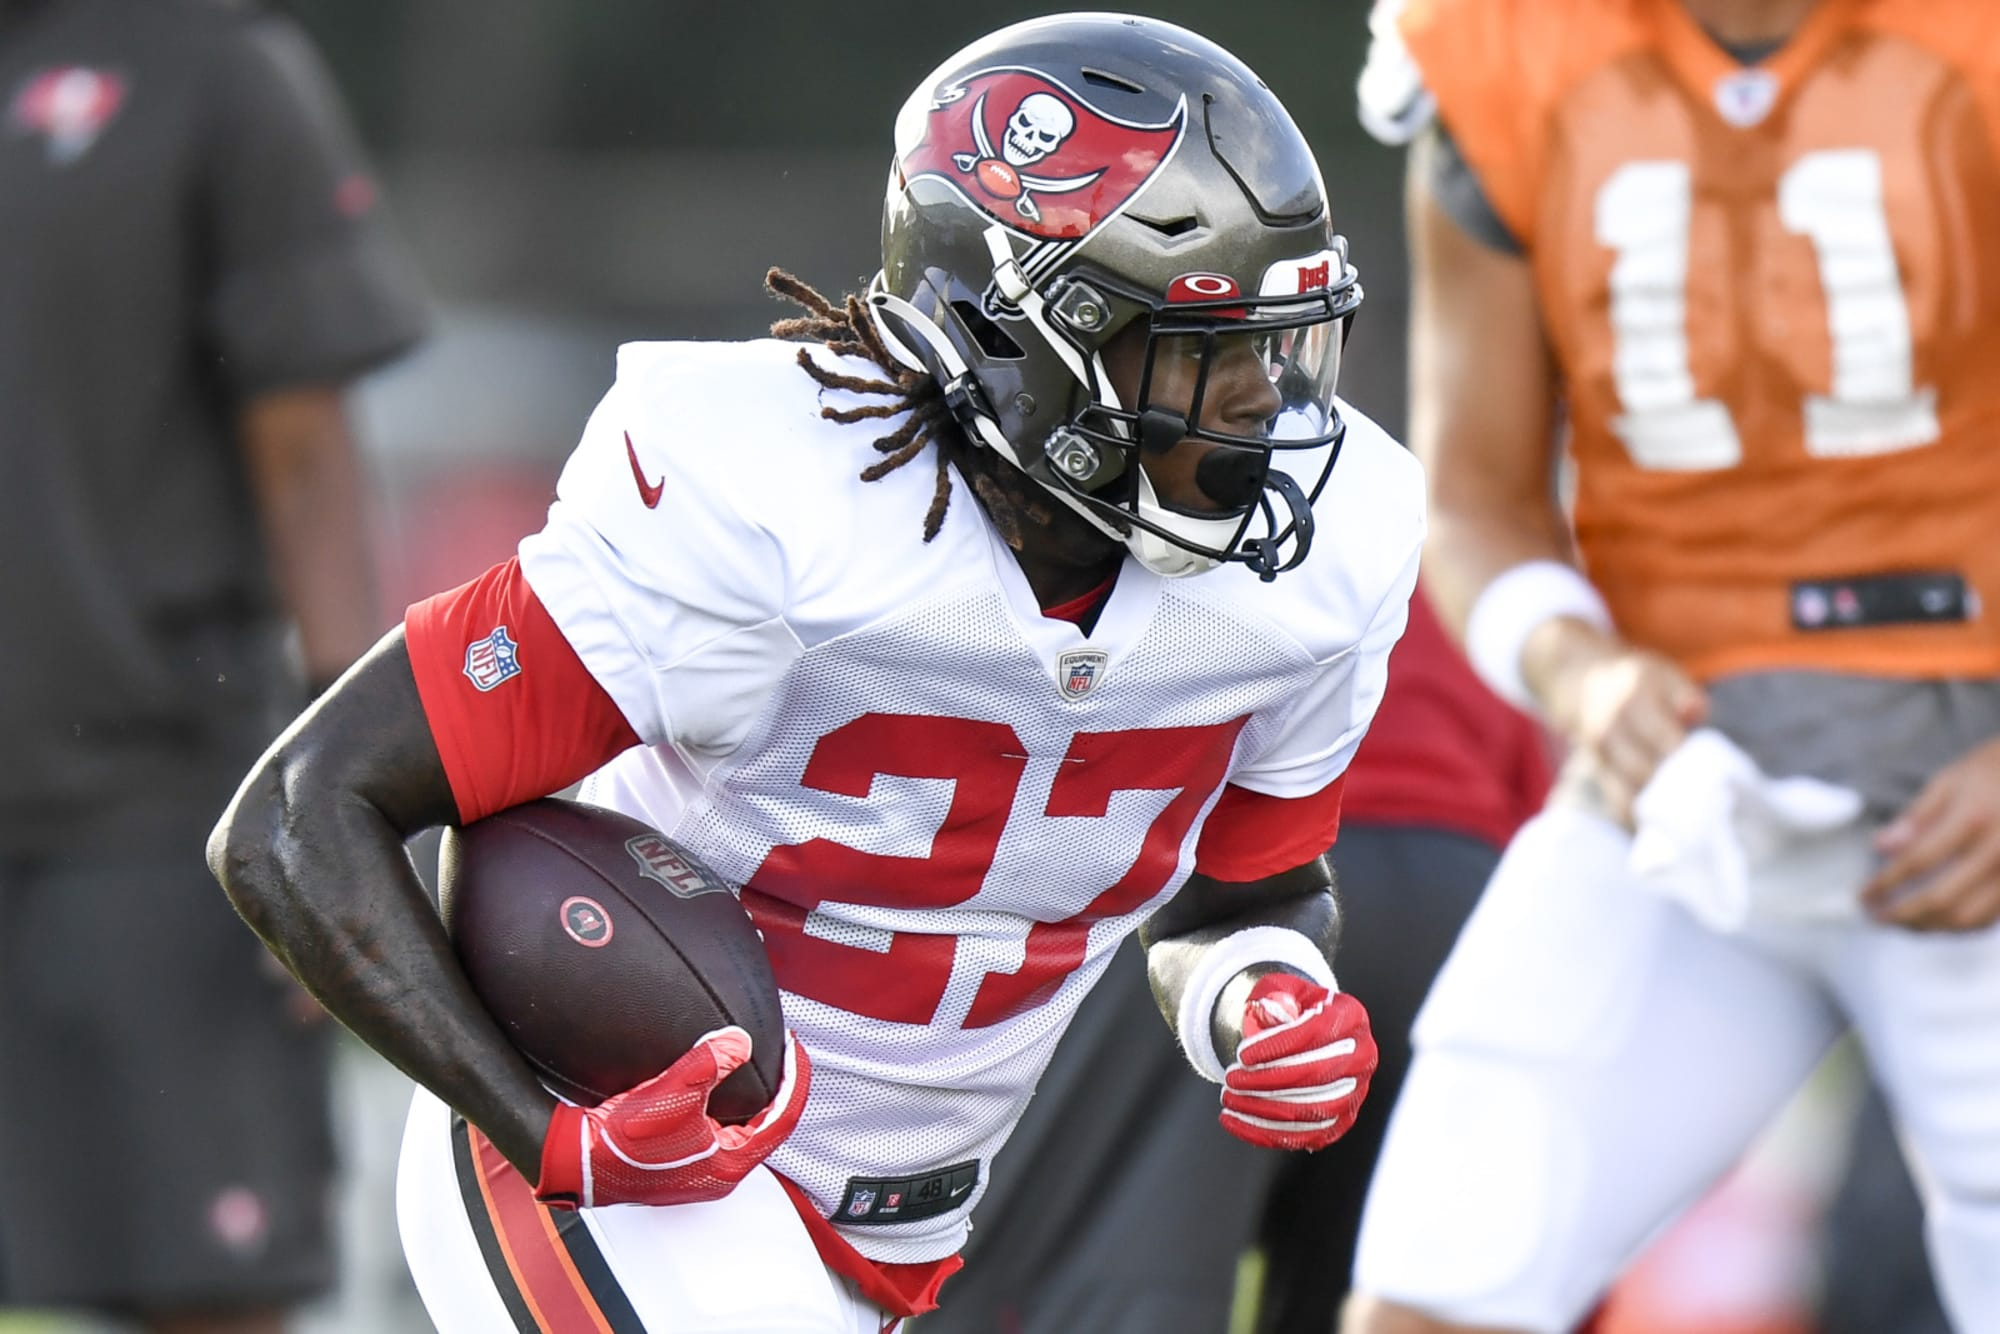 Ronald Jones finally appears ready to break out for the Buccaneers